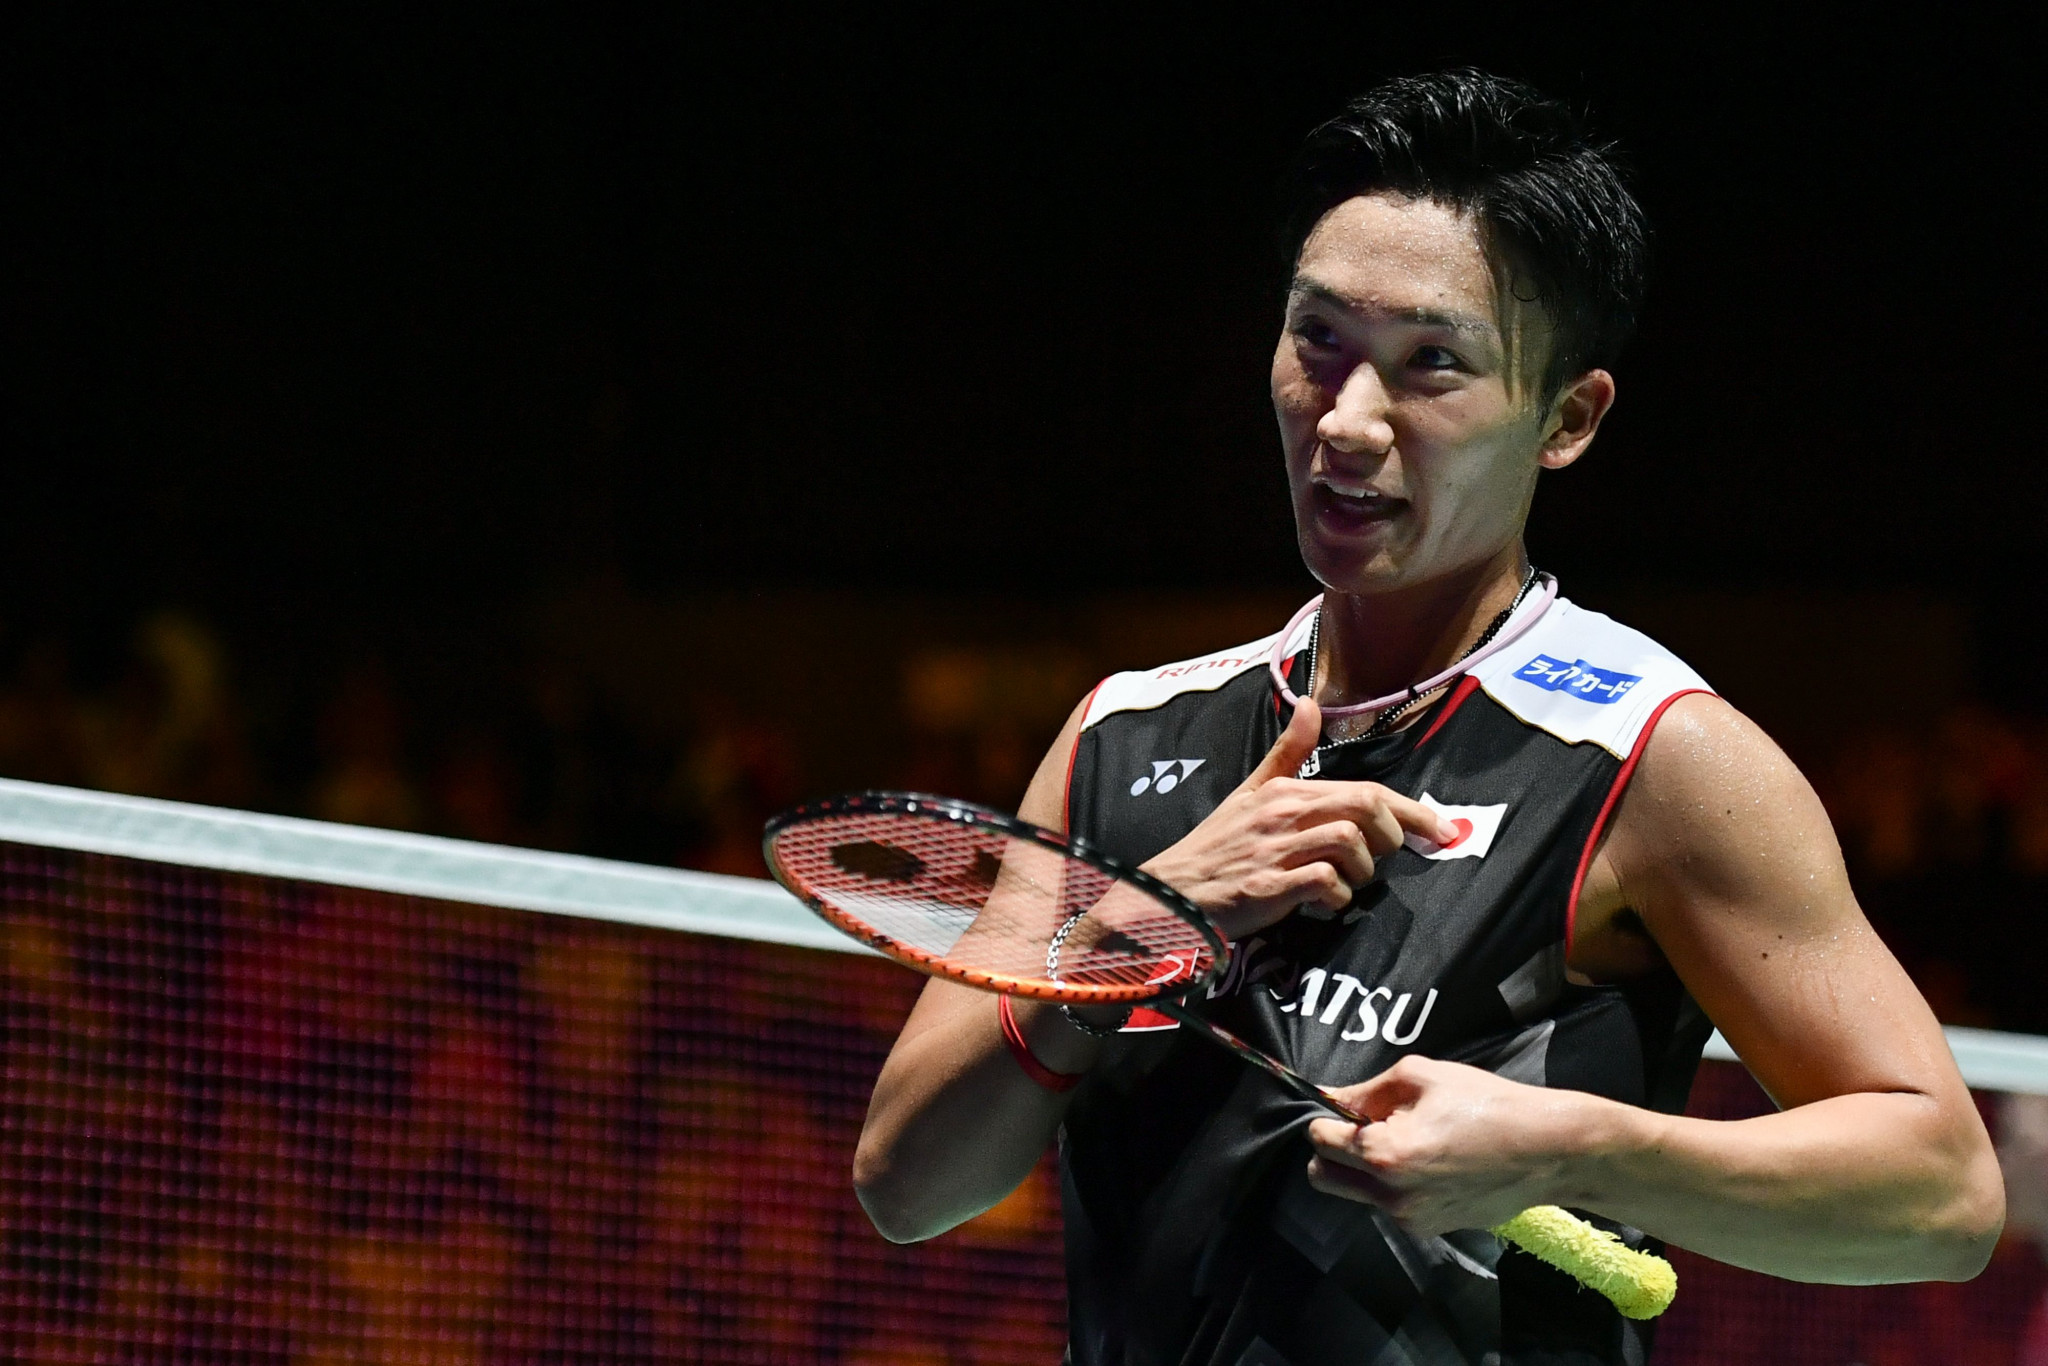 Kento Momota continued serene progression to reach the quarter-finals ©Getty Images